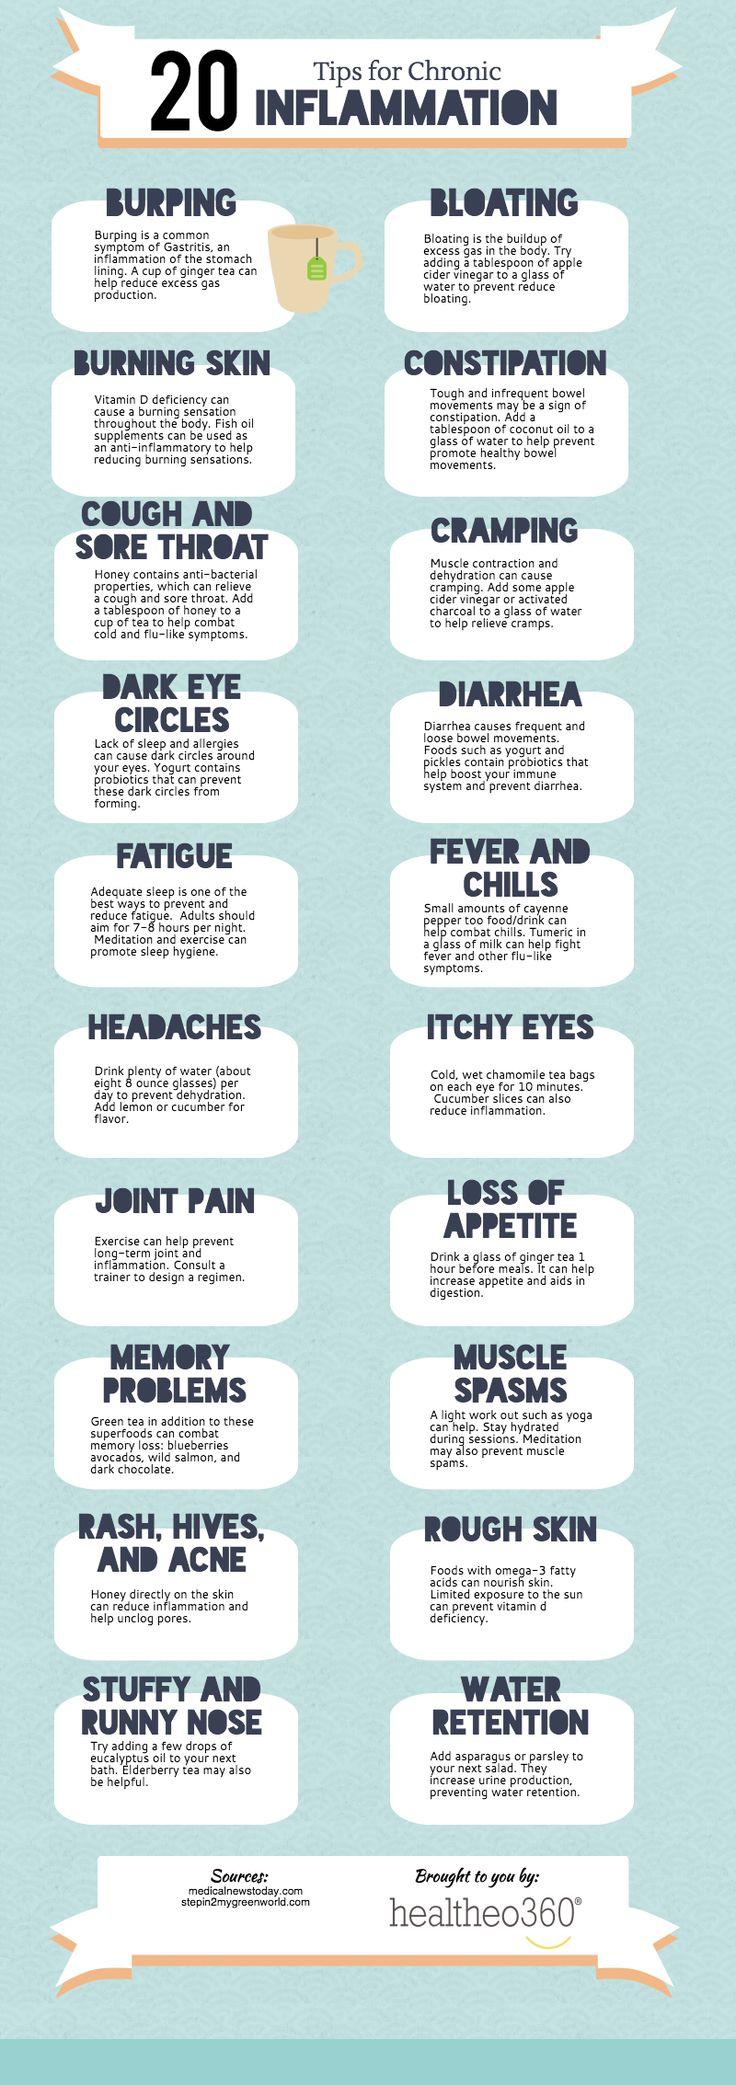 Chronic Inflammation - Twenty Tips  Chronic inflammation may be caused by a handful of diseases and conditions, including: asthma, rheumatoid arthritis, tuberculosis, and more. Environmental and lifestyle factors, such as excess weight, poor diet, stress, and lack of exercise, can also cause chronic inflammation. Try these twenty tips to reduce and prevent chronic inflammation…